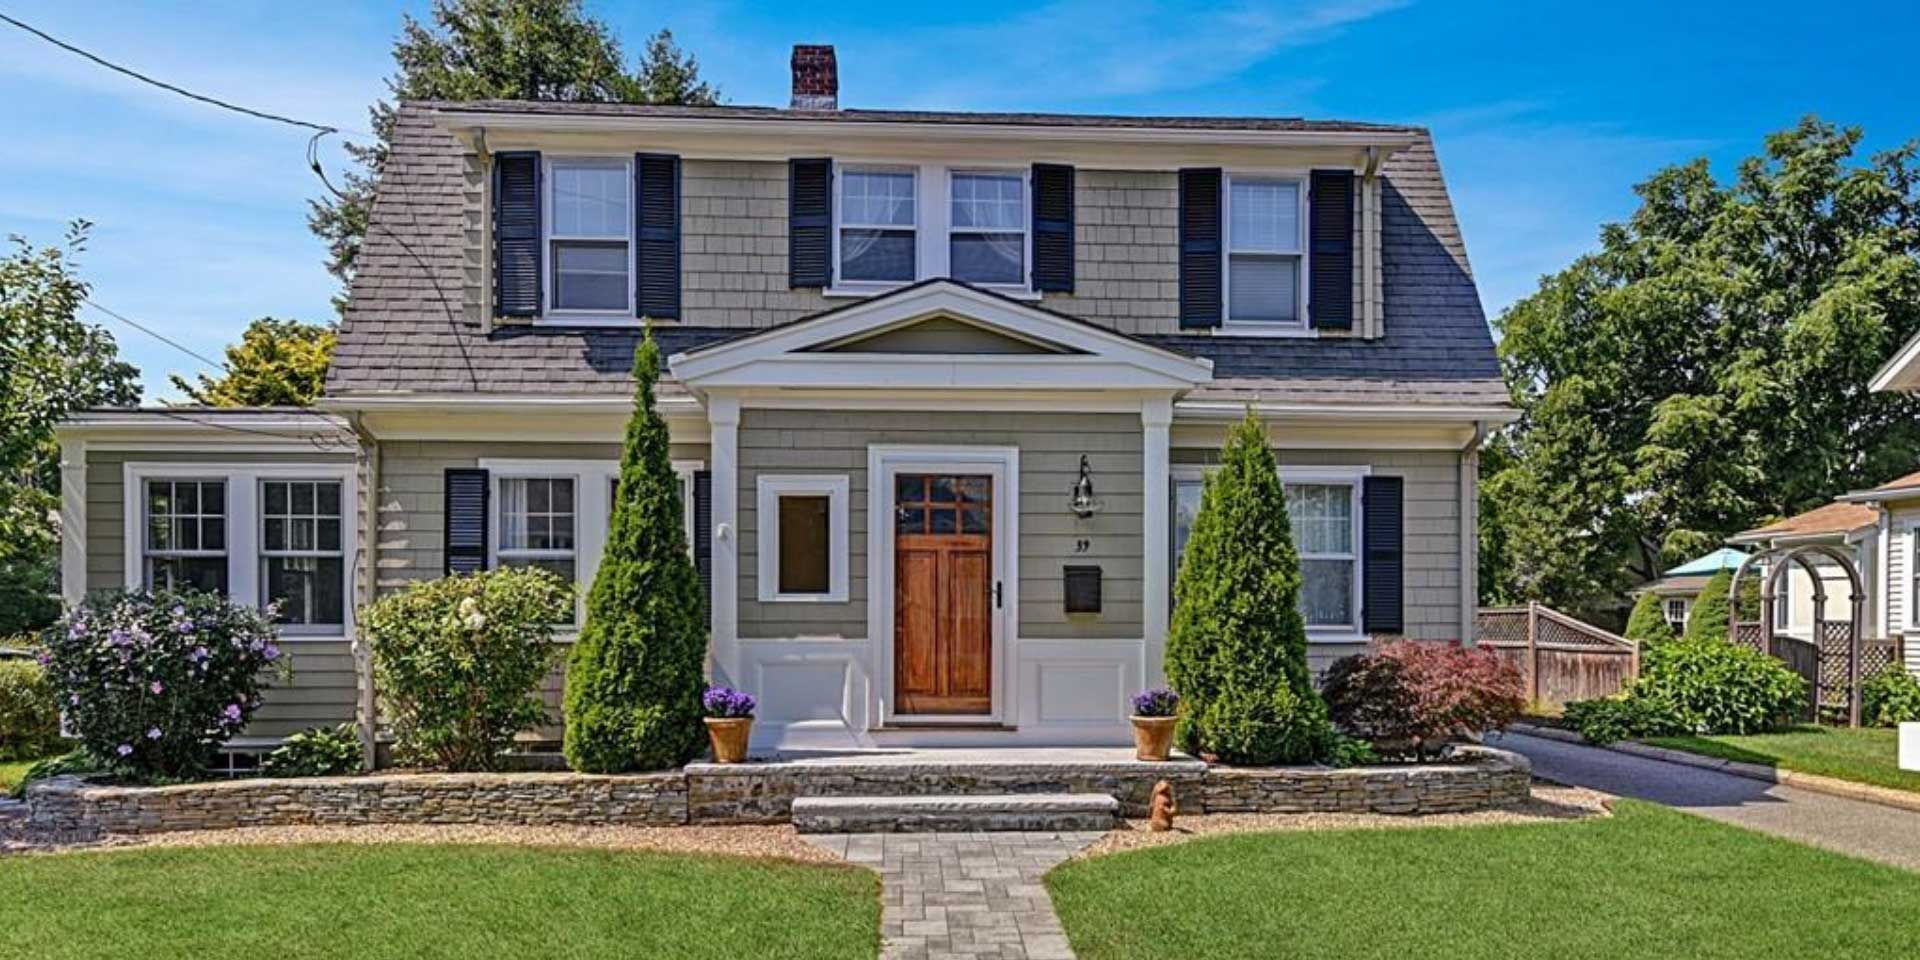 8-GloriaConviser-Esquire-Realtor-Needham-Newton-homepage.jpg